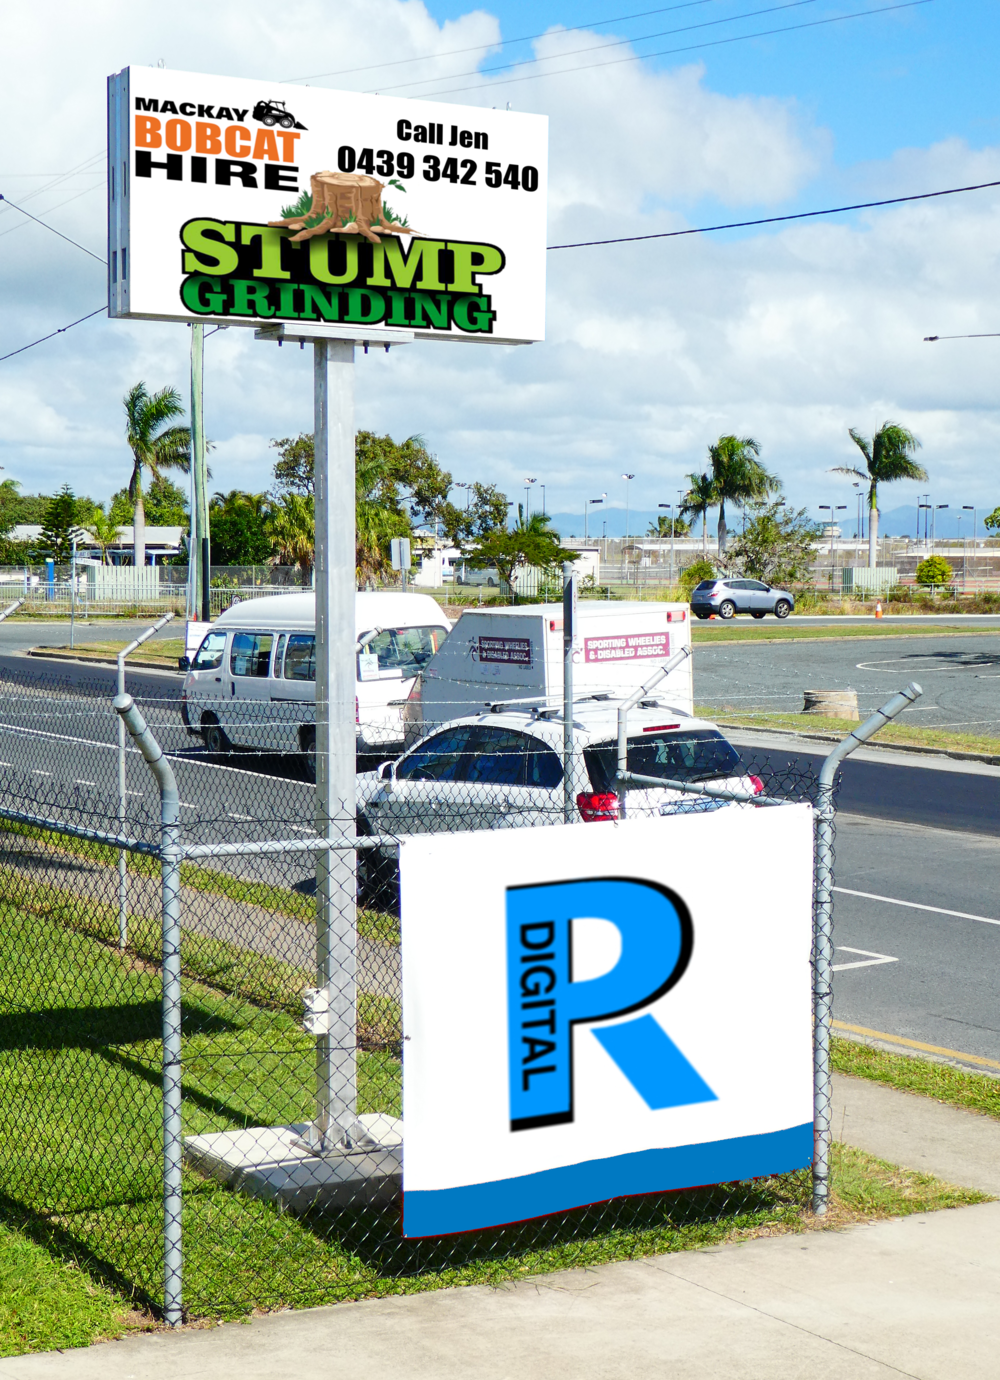 Mackay South - Site Information: Mackay BasketballLocation   Juliet Street in the heart of the sporting centers and StadiumsSign Type      LED P5.9Direction      Double Sided SignTraffic Flow  5,000 Per Day